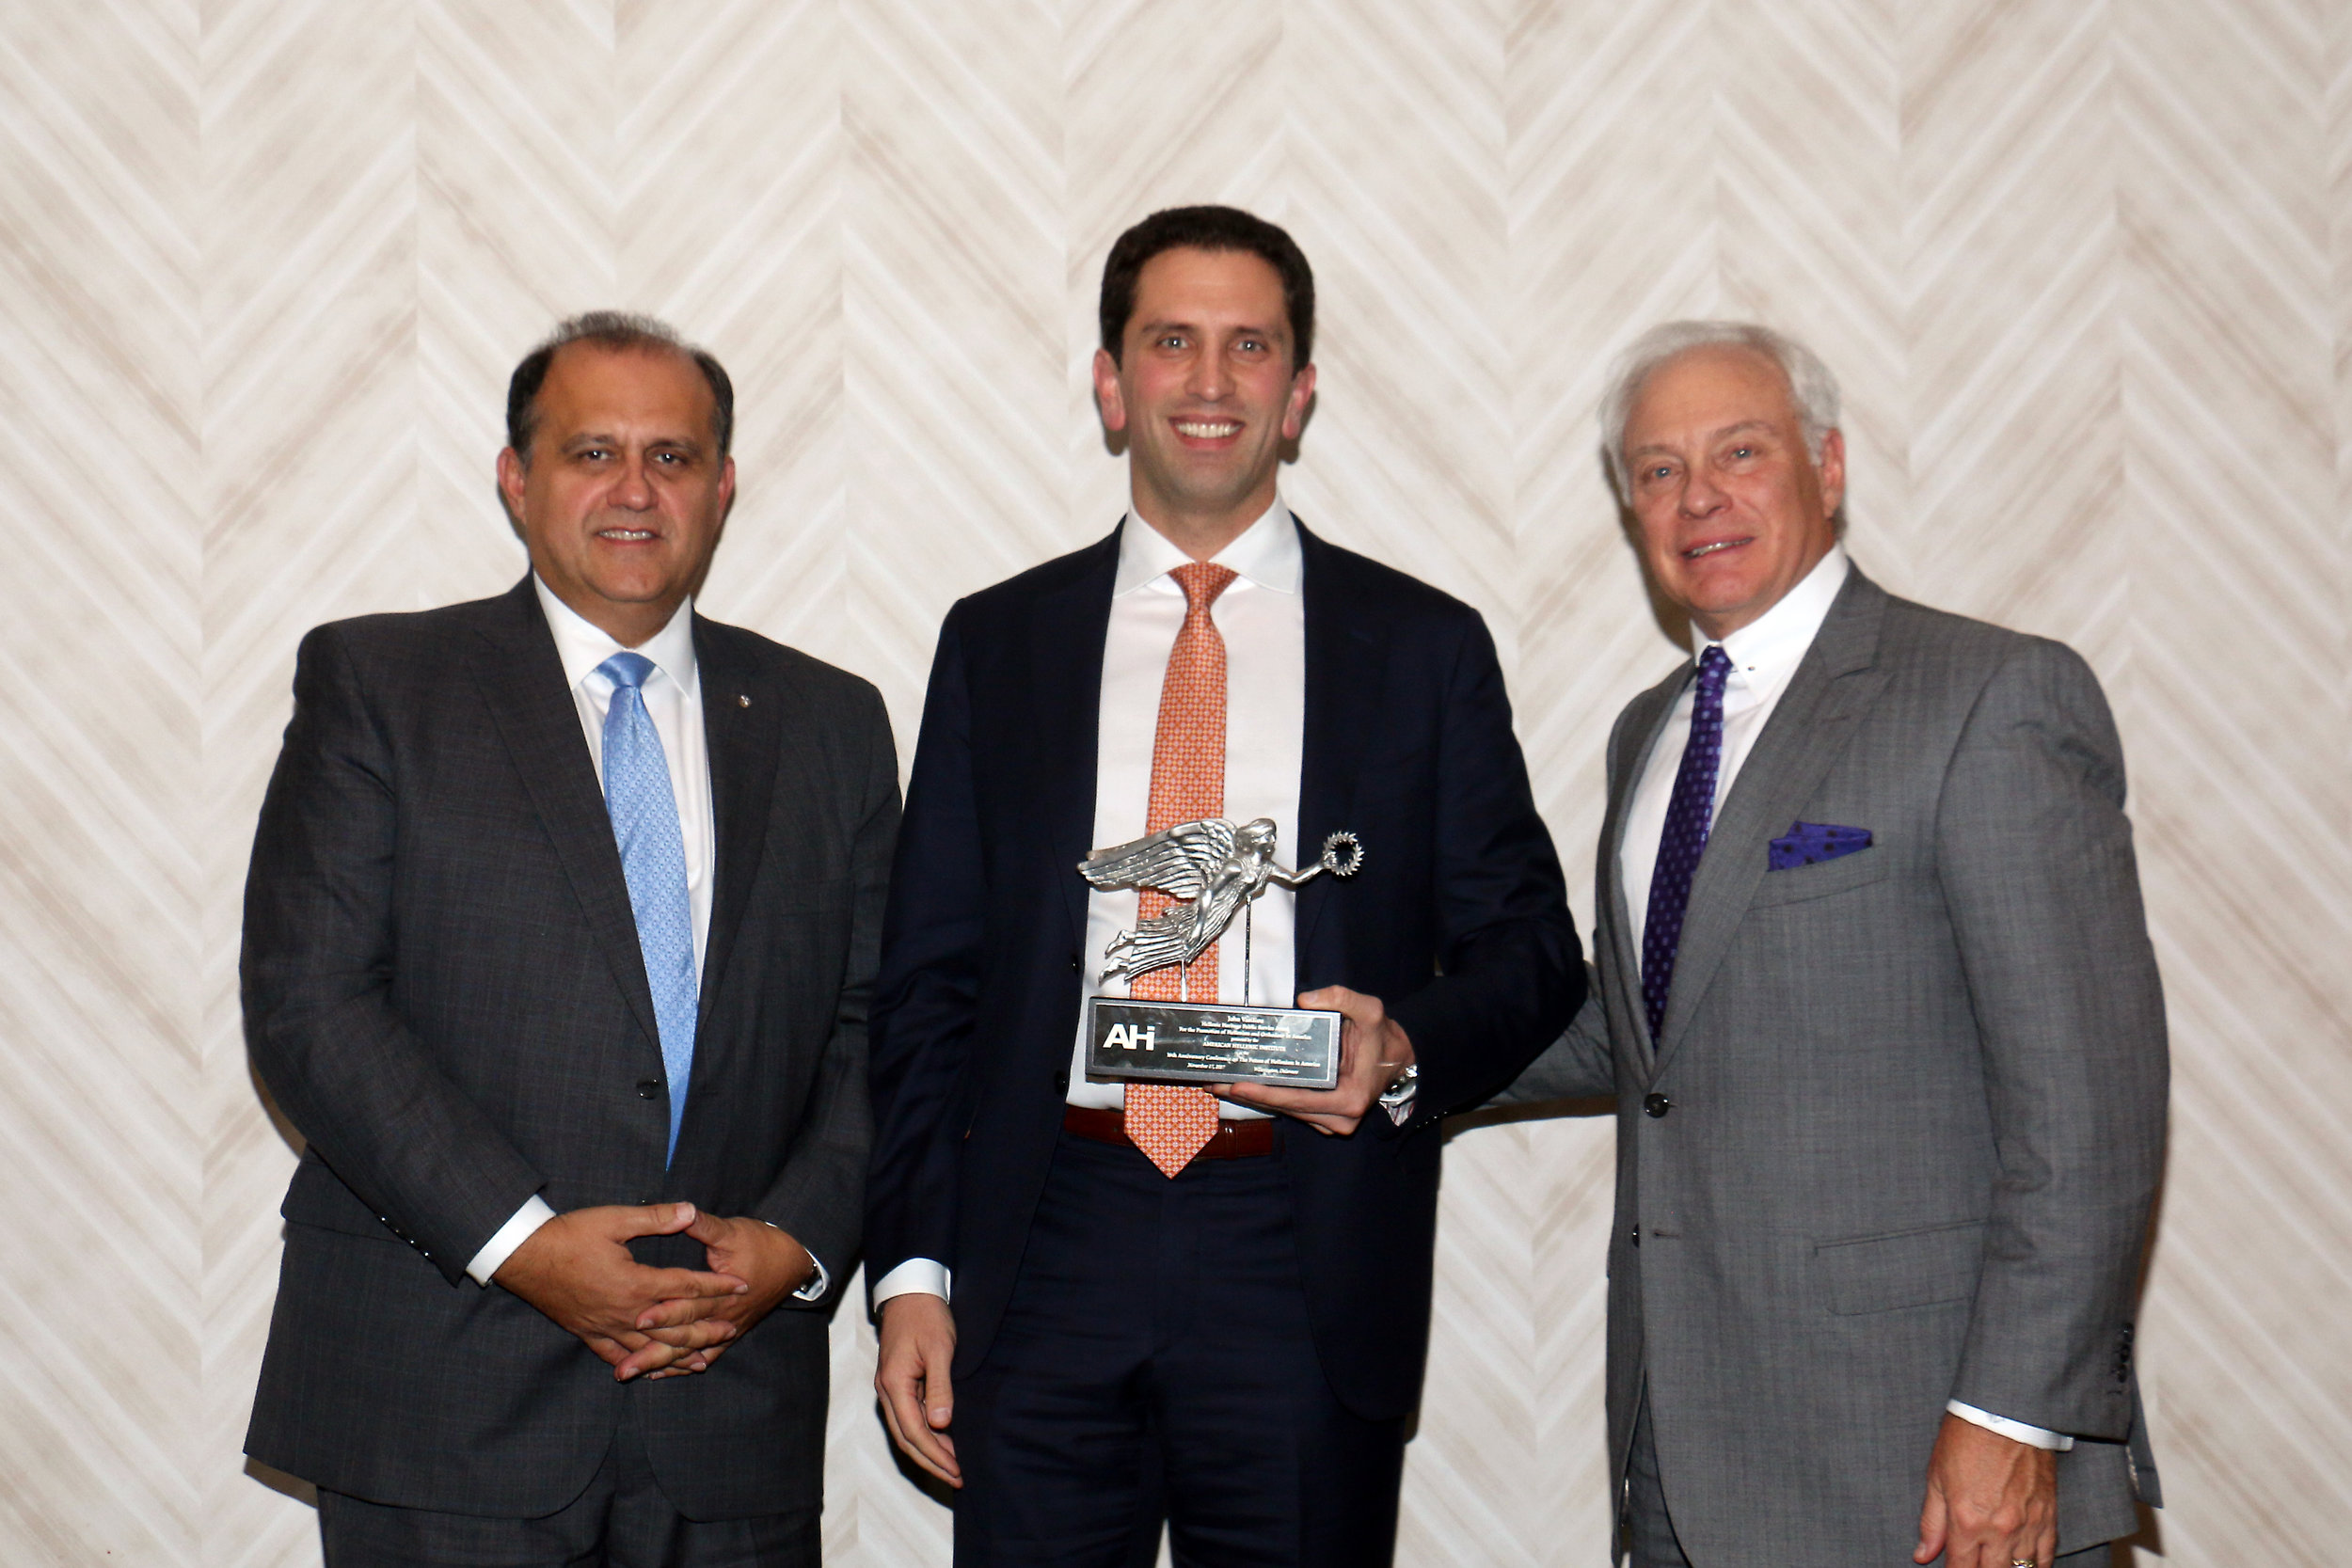 Nick Larigakis and Nick Chimicles present John Vasiliou with the AHI Hellenic Heritage Public Service Award for the Promotion of Hellenism and Orthodoxy in America.